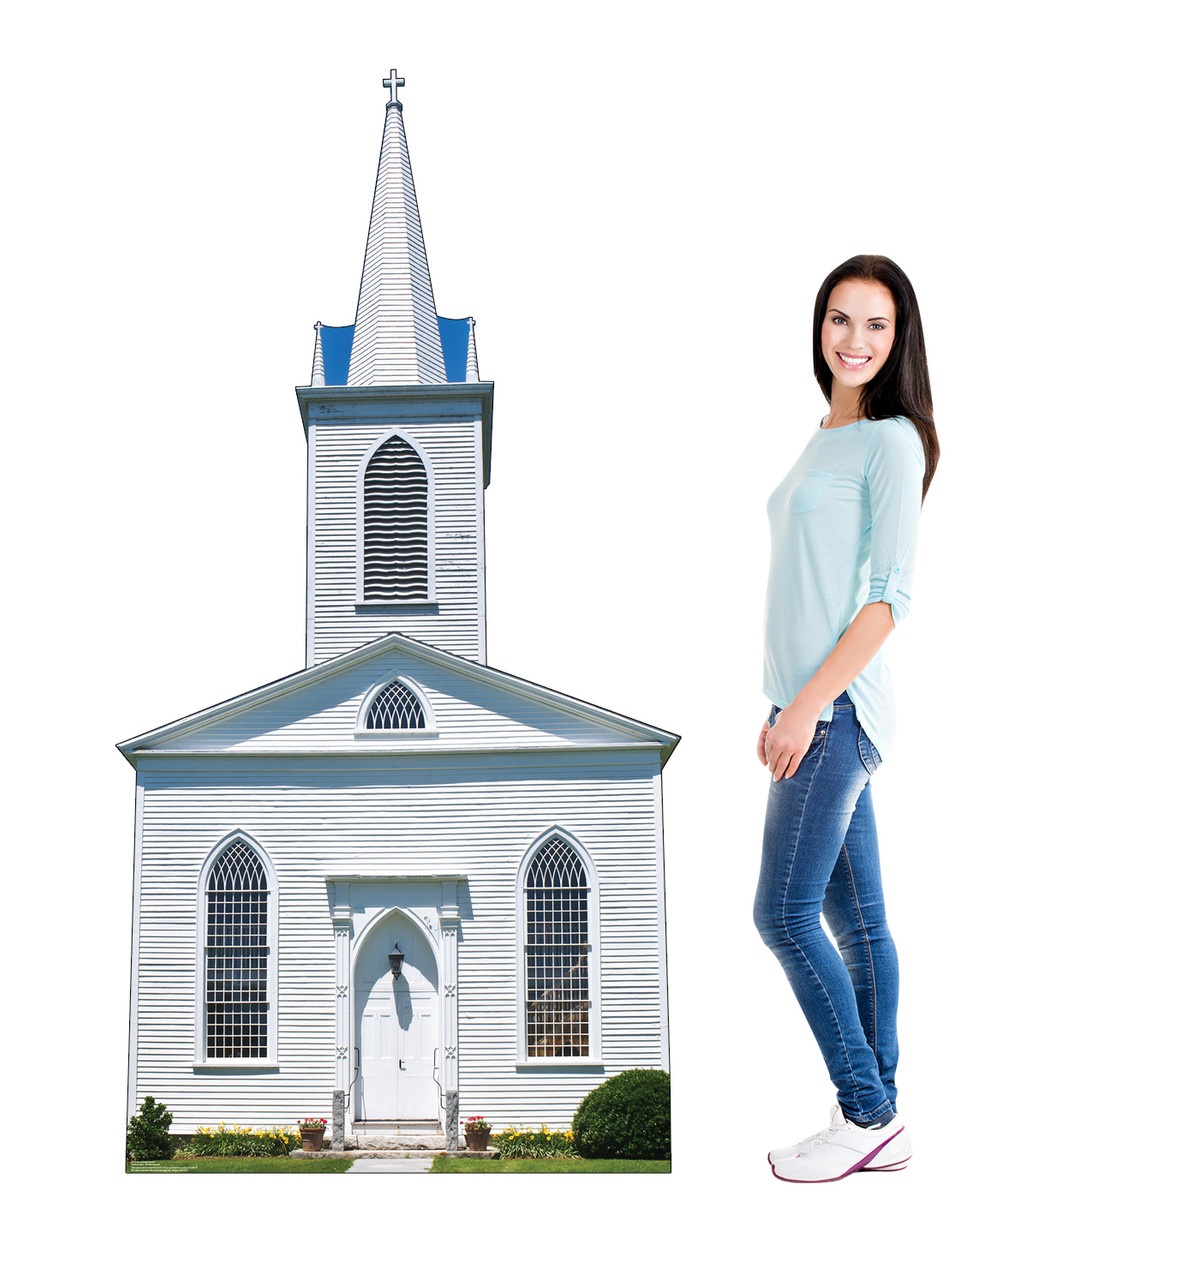 Life-size cardboard standee of Church with Steeple with model.